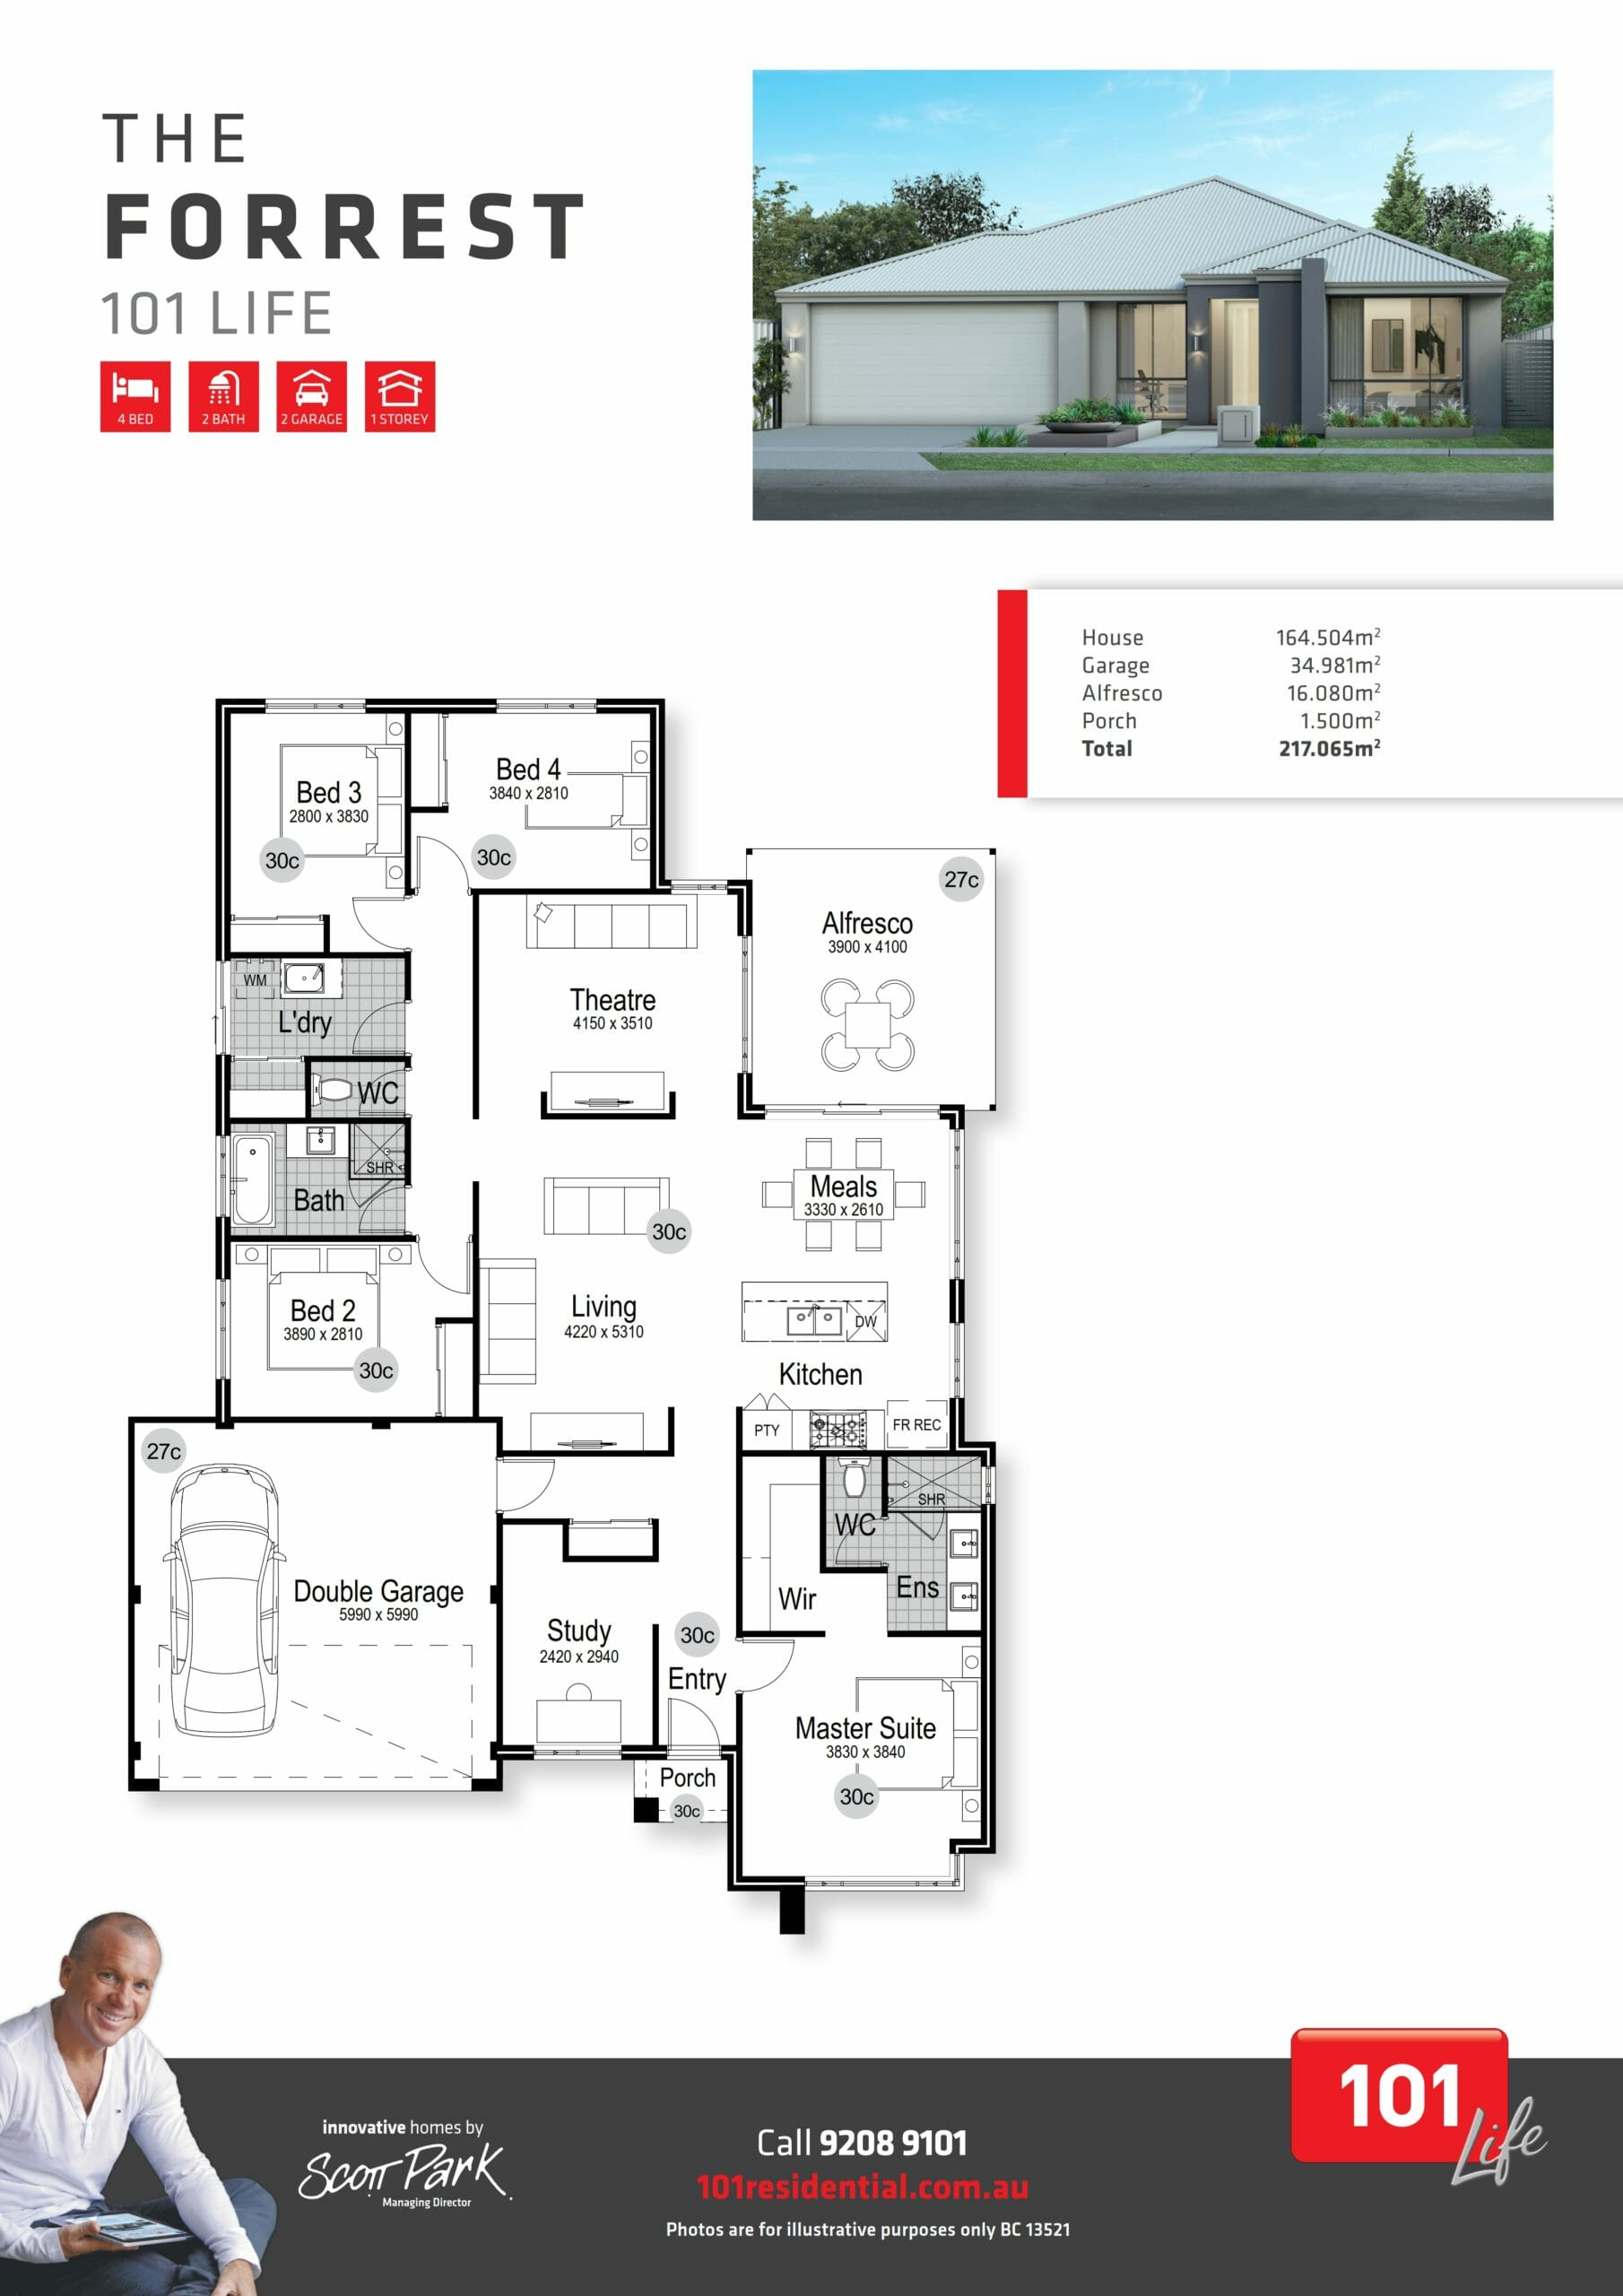 101 A3 Floor Plan - Forrest WEB_001